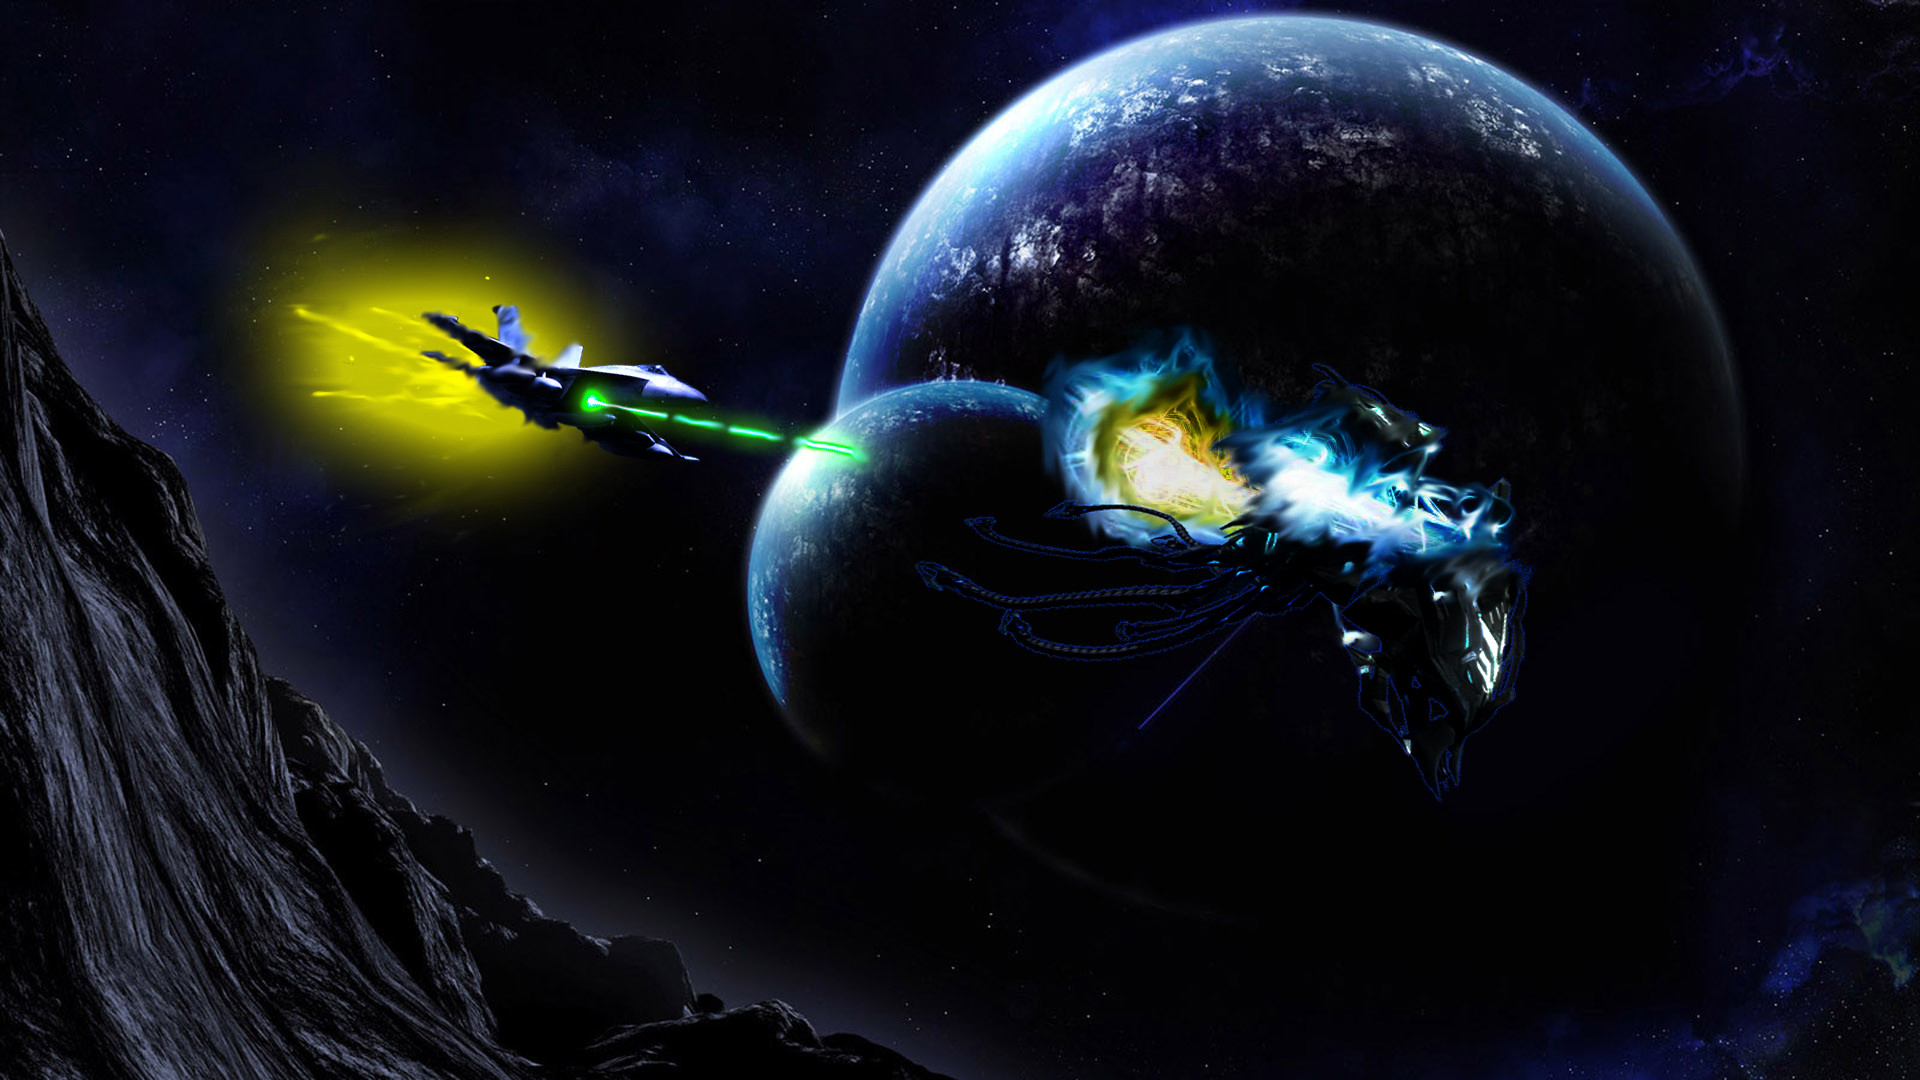 Res: 1920x1080, Epic Space Battle by DrilburNG Epic Space Battle by DrilburNG